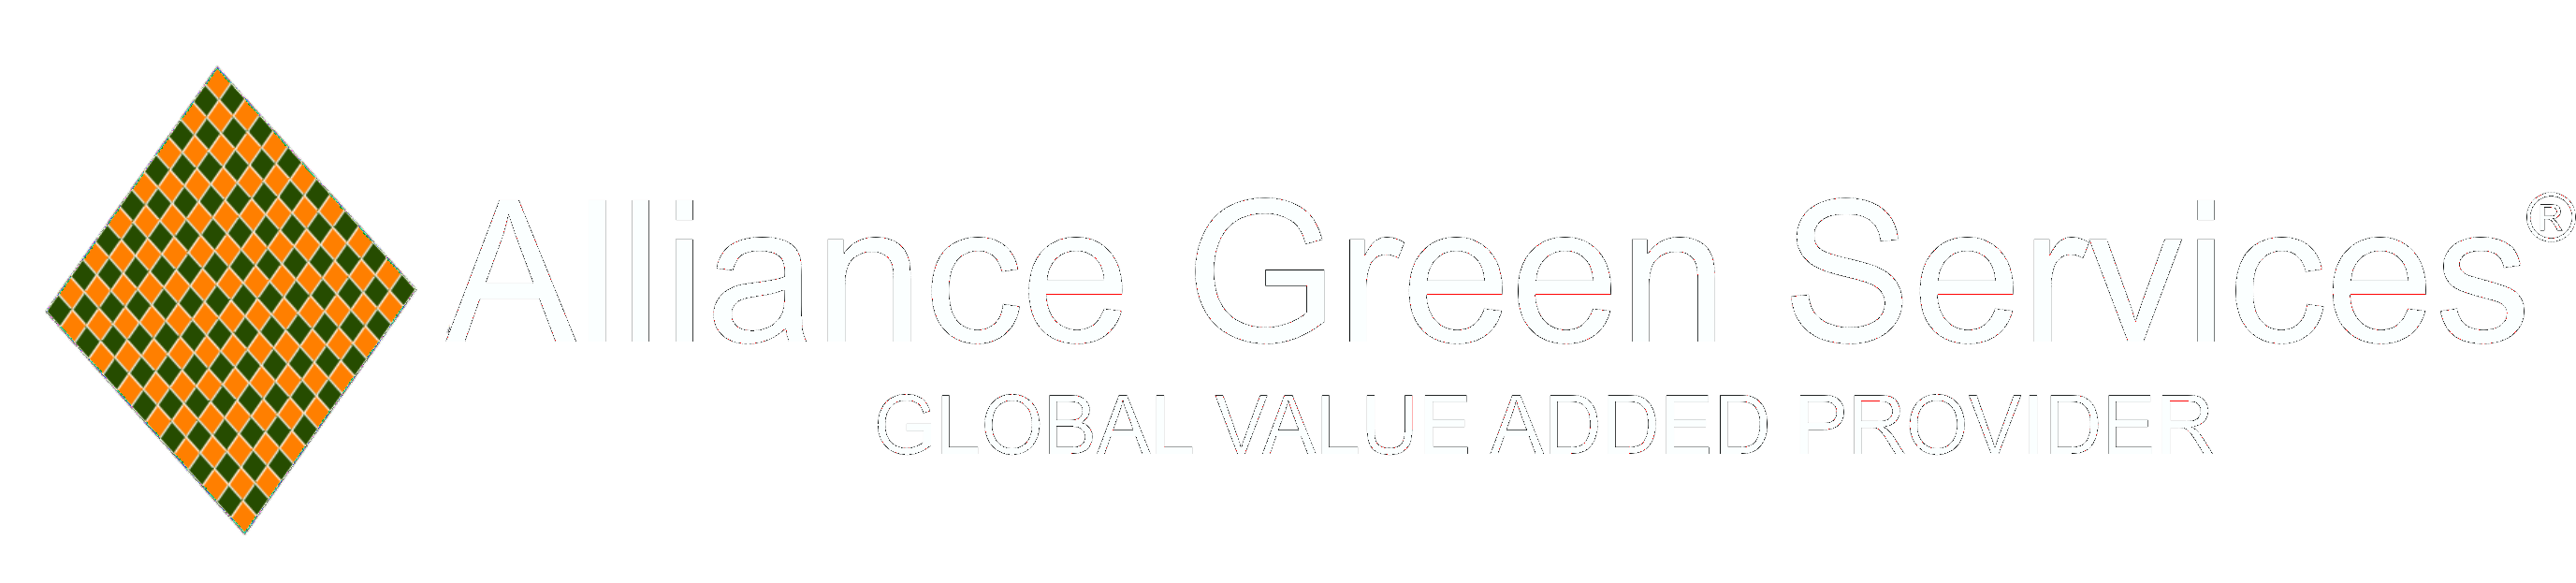 Alliance Green Services